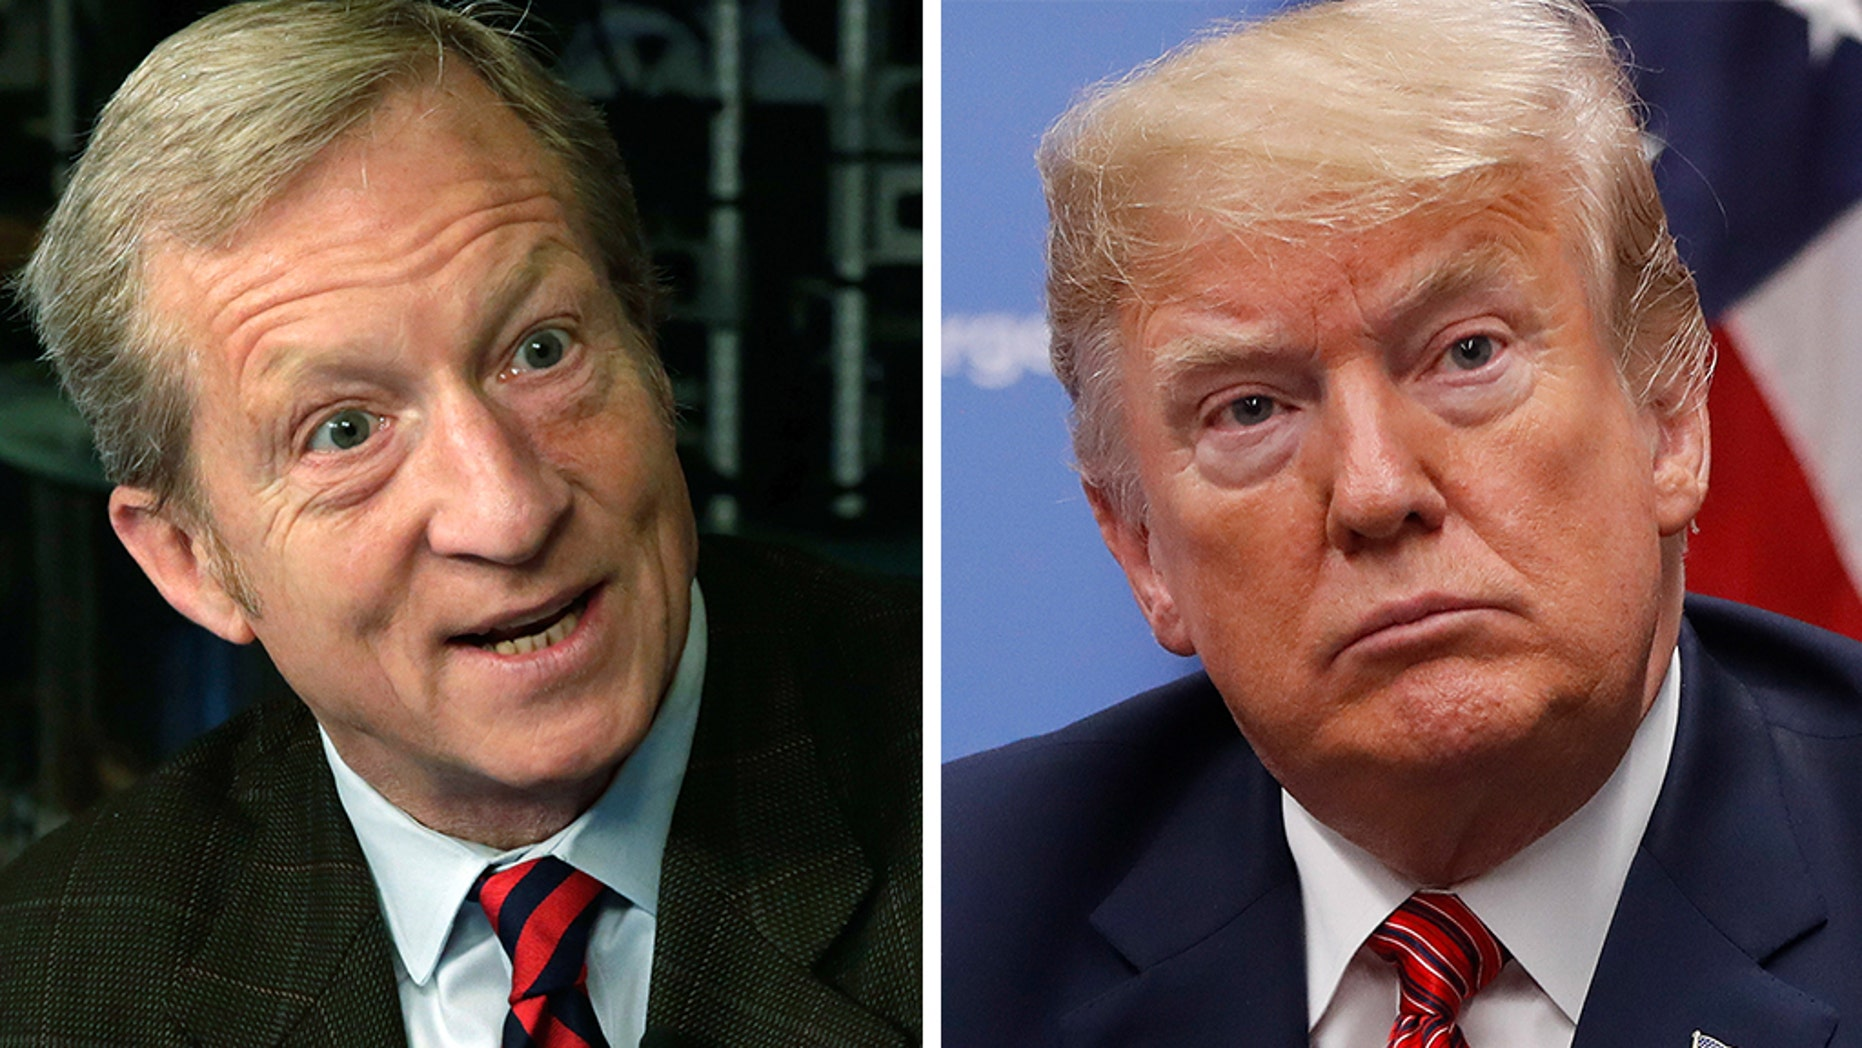 Liberalmega-donor Tom Steyerquickly moved Tuesday's conversation to impeachment, something he has supported via his organization Need to Impeach